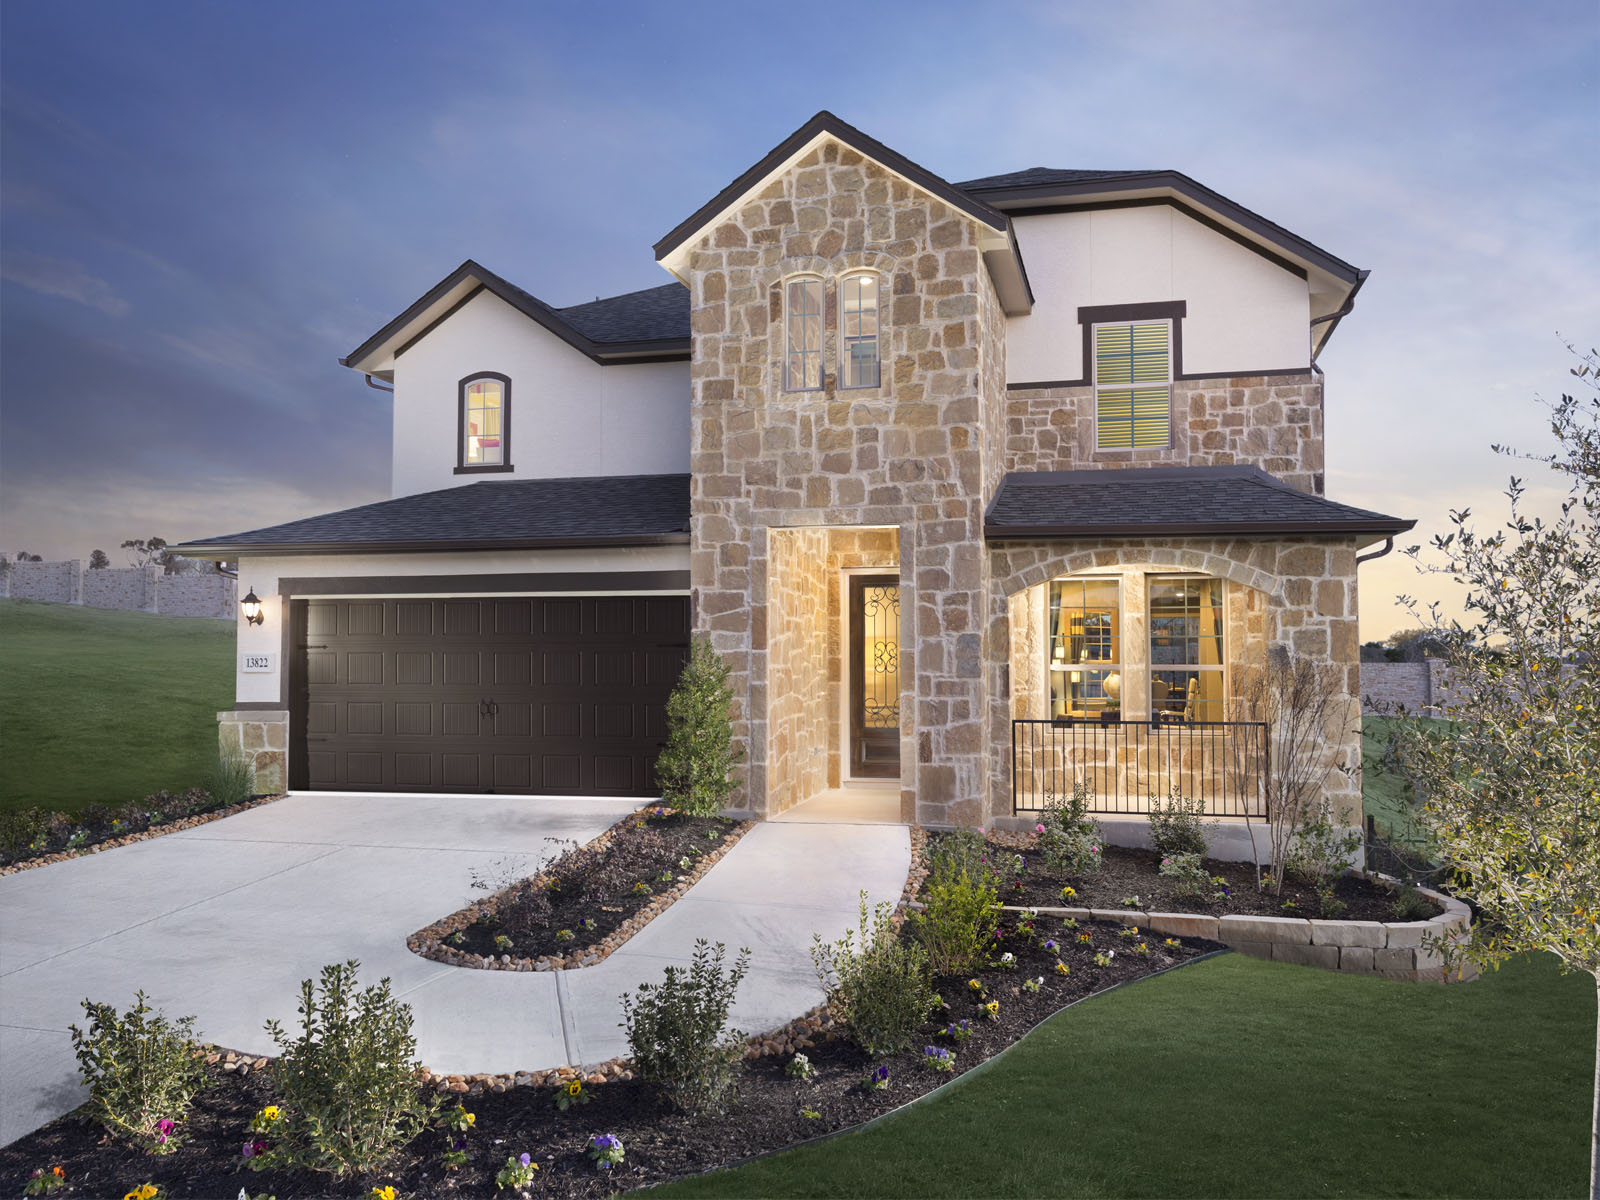 The Meadows at Steubing Farm Unit 2   50s. New Home Communities in San Antonio   Meritage Homes